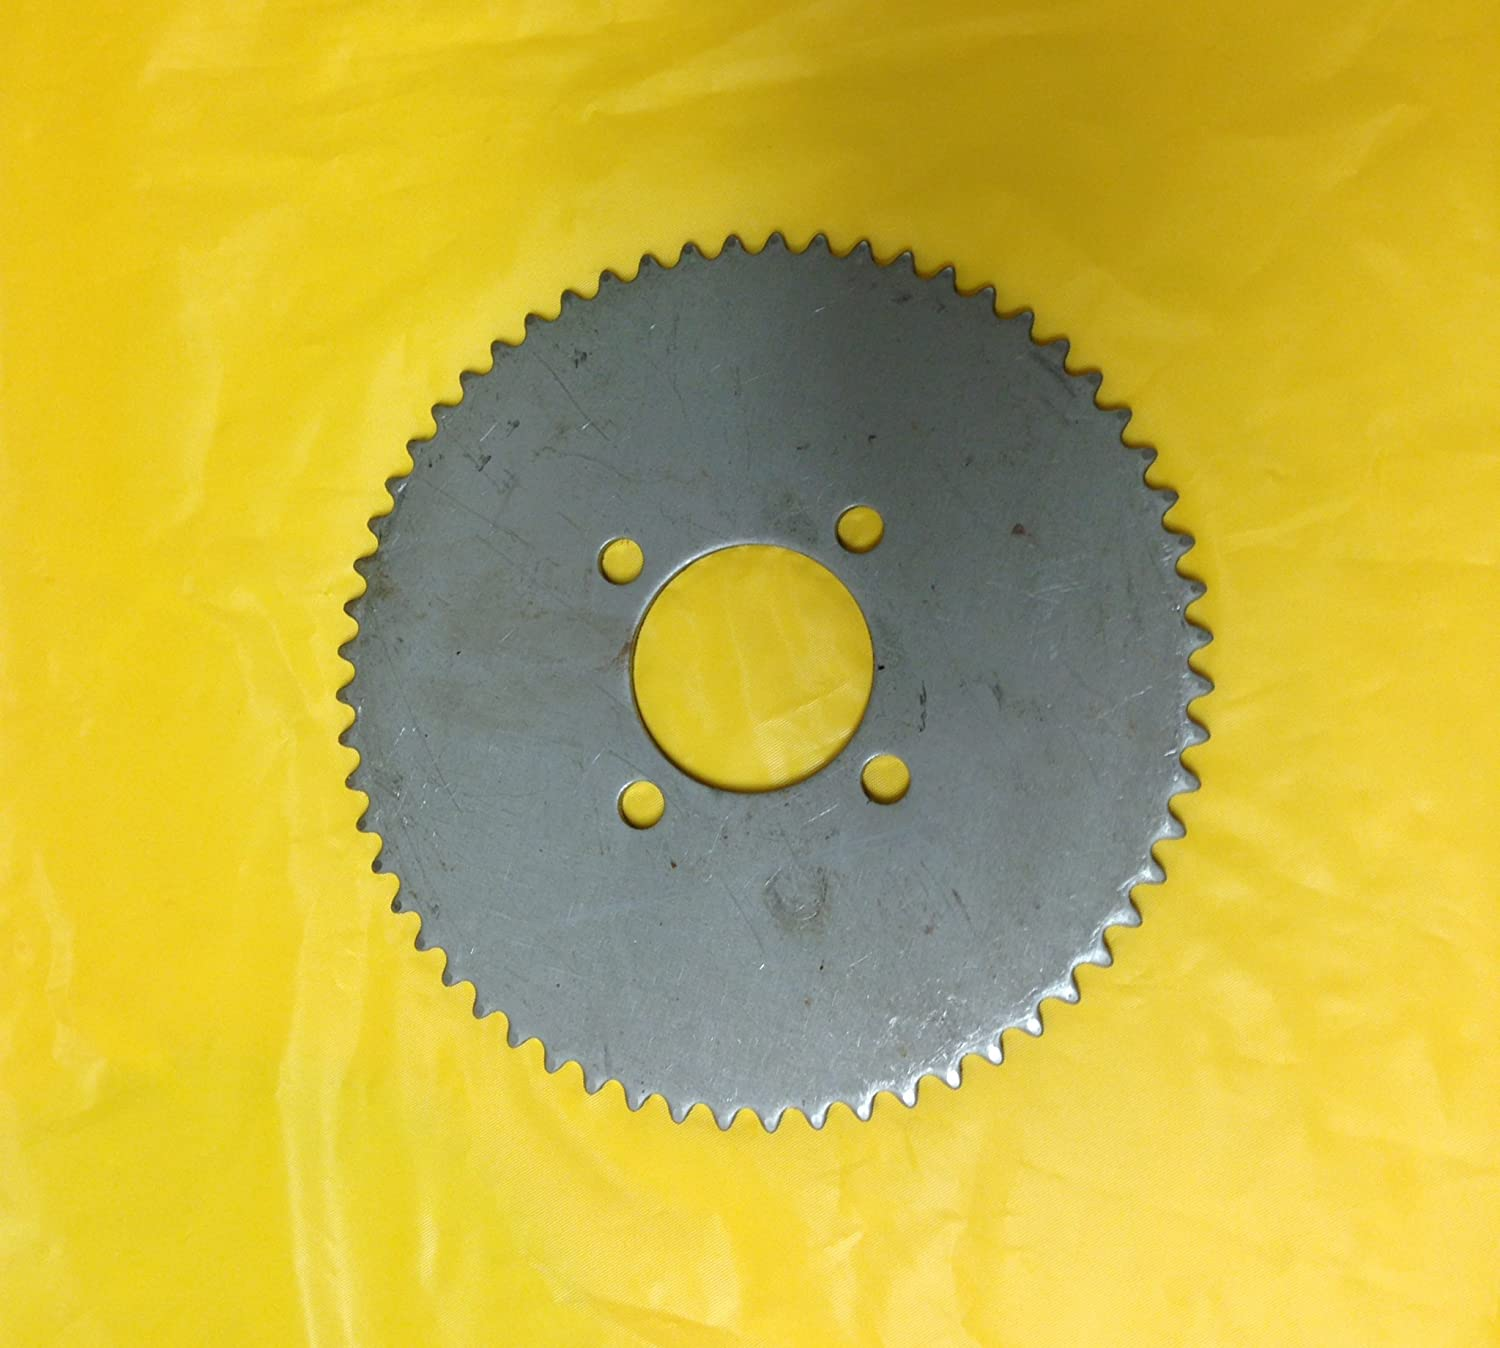 """ROTARY PART # 469 STEEL PLATE 60T SPROCKET USED ON 35 CHAIN WITH 2/"""" CENTER HOLE"""